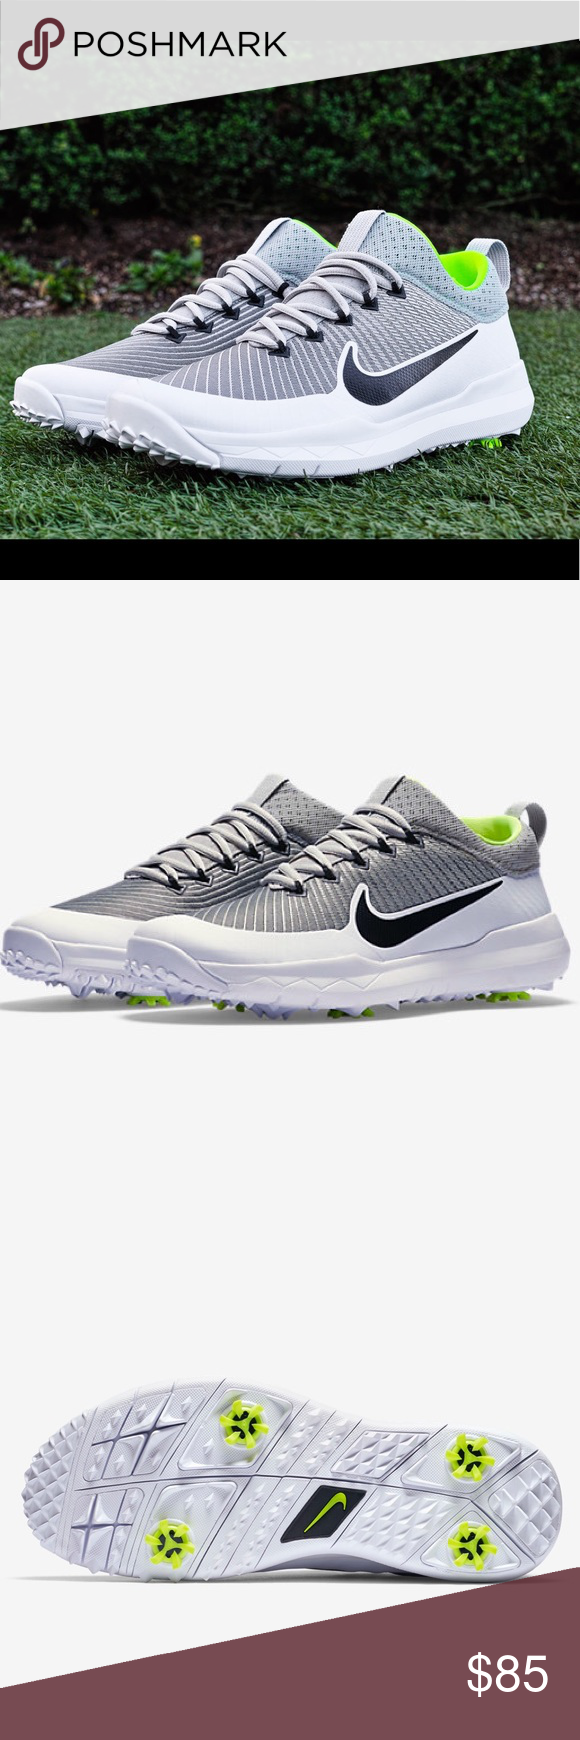 2653c11c105 NWT Nike FI Premiere Mens Golf Shoes Please make offers! Men size 9 Gray and